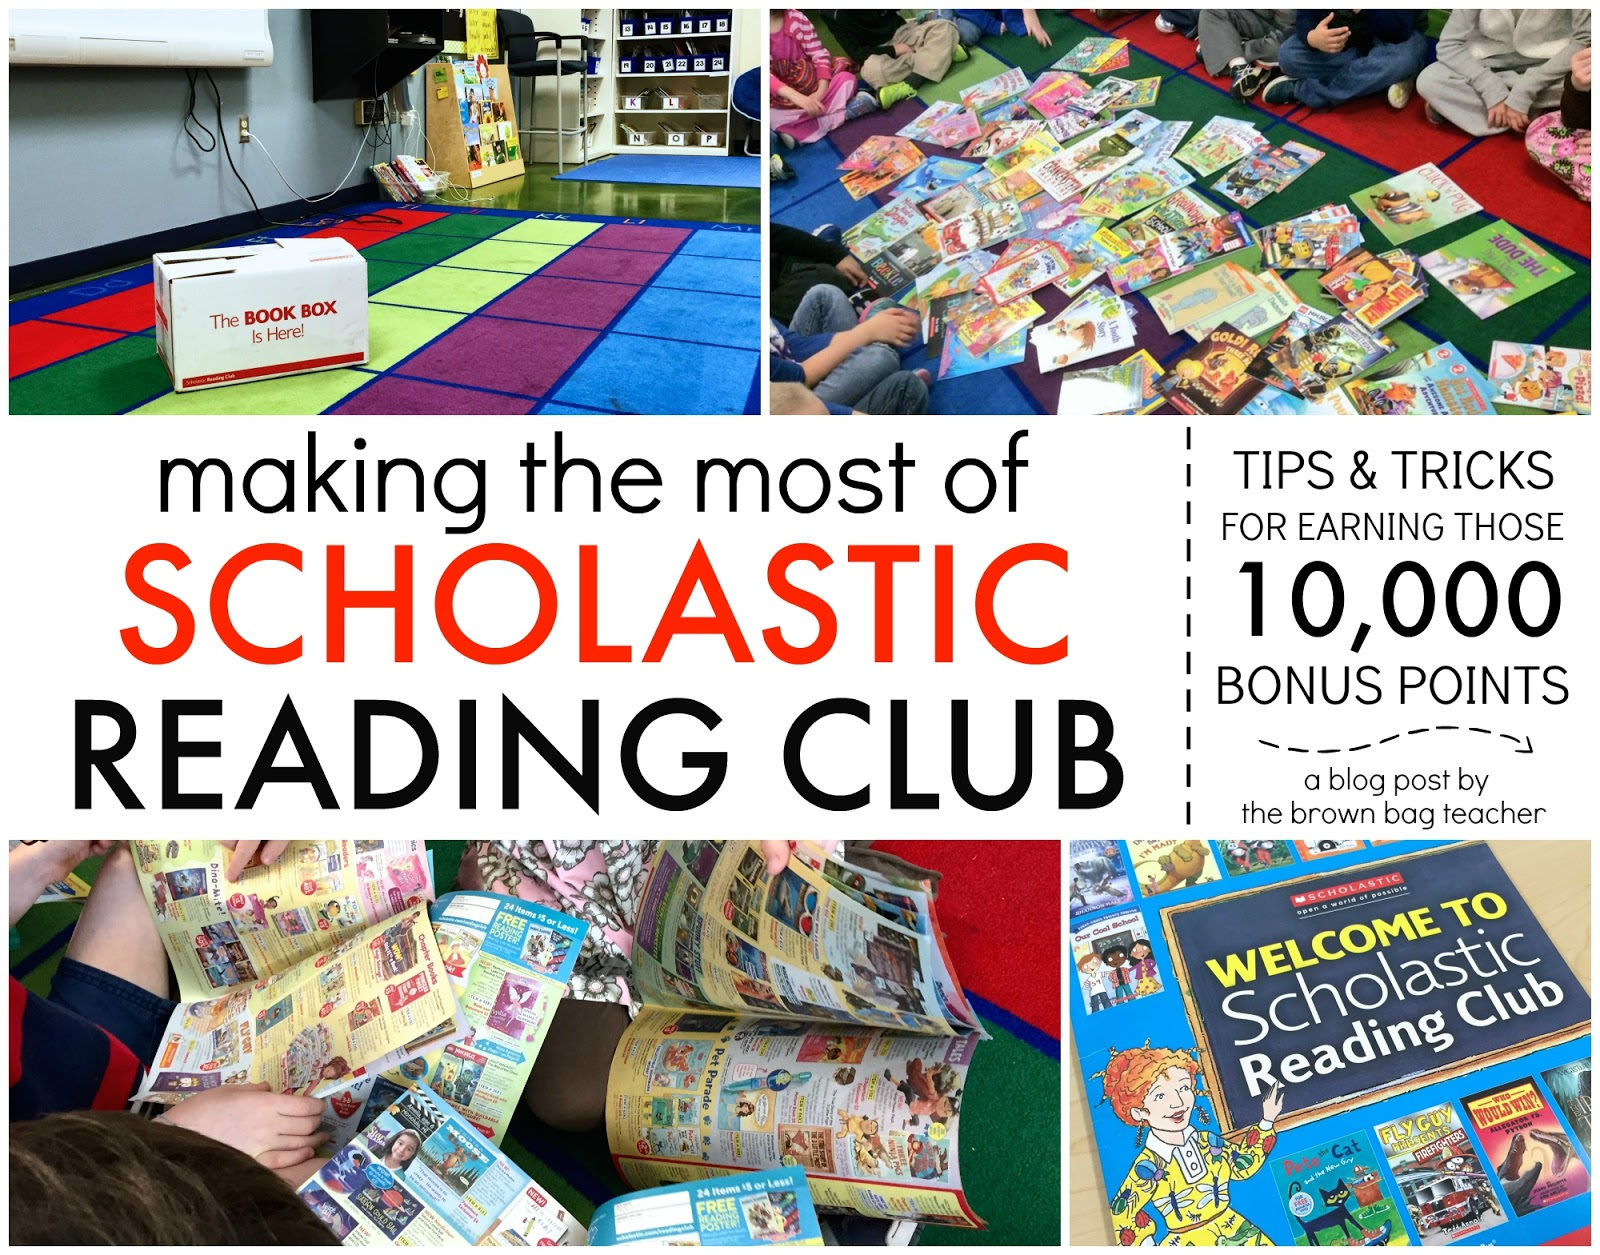 Scholastic Book Clubs is the best possible partner to help you get excellent children's books into the hands of every child, to help them become successful lifelong readers and discover the joy and power of .